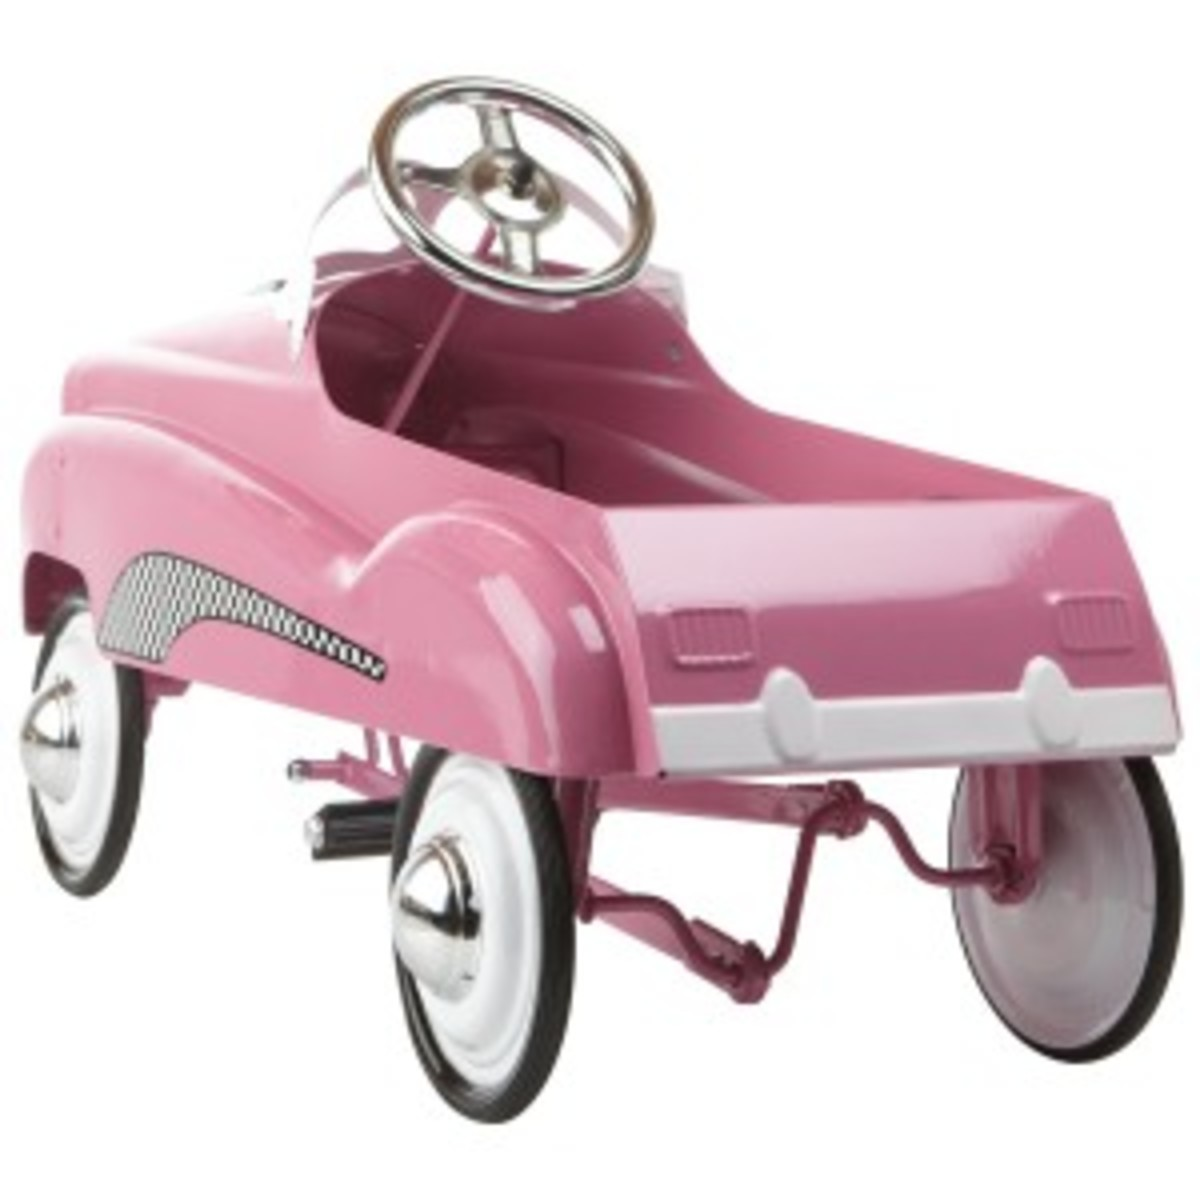 back of pink pedal car